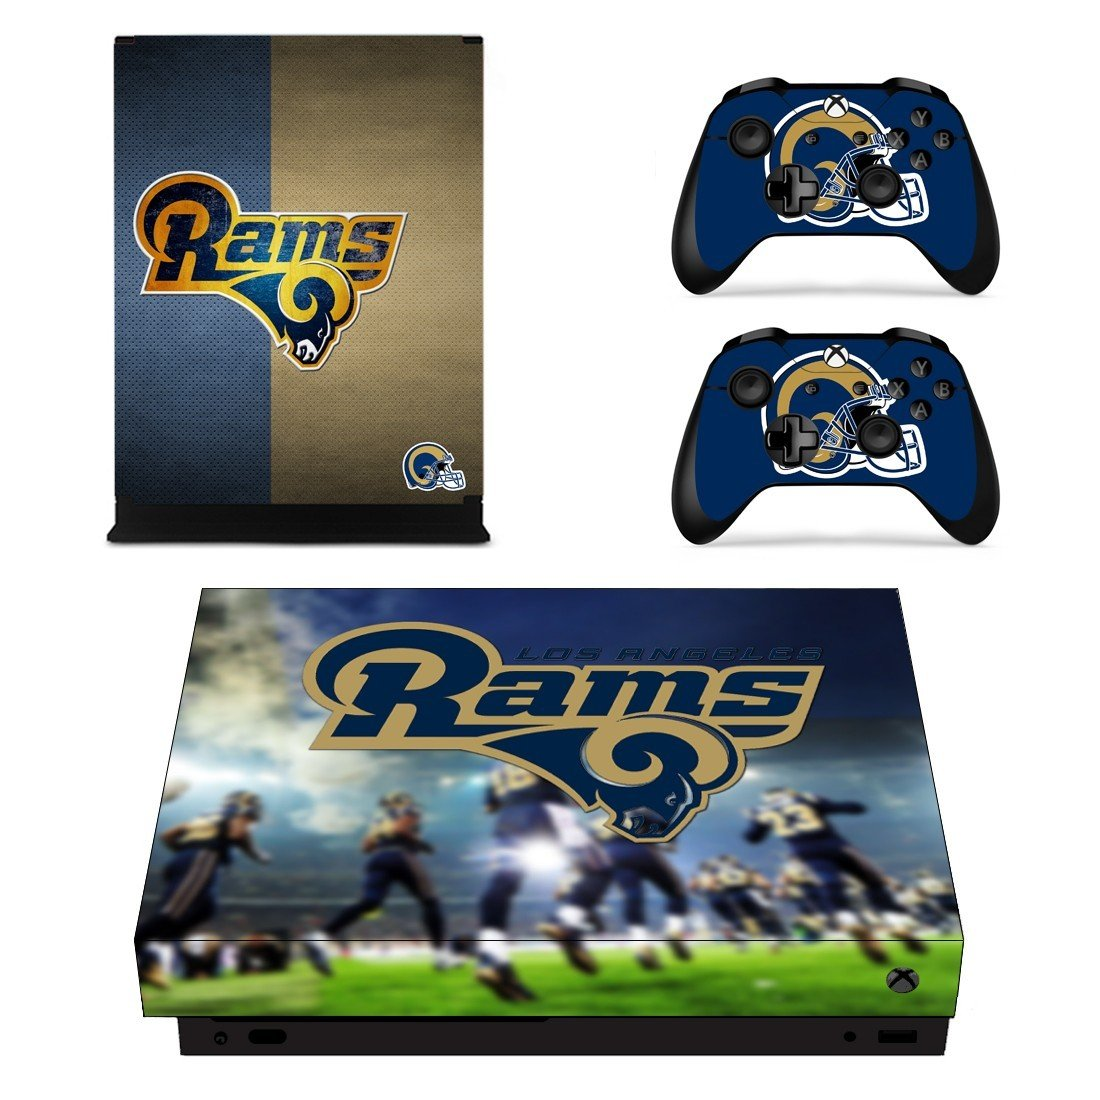 Los Angeles Rams decal skin sticker for Xbox One X console and controllers